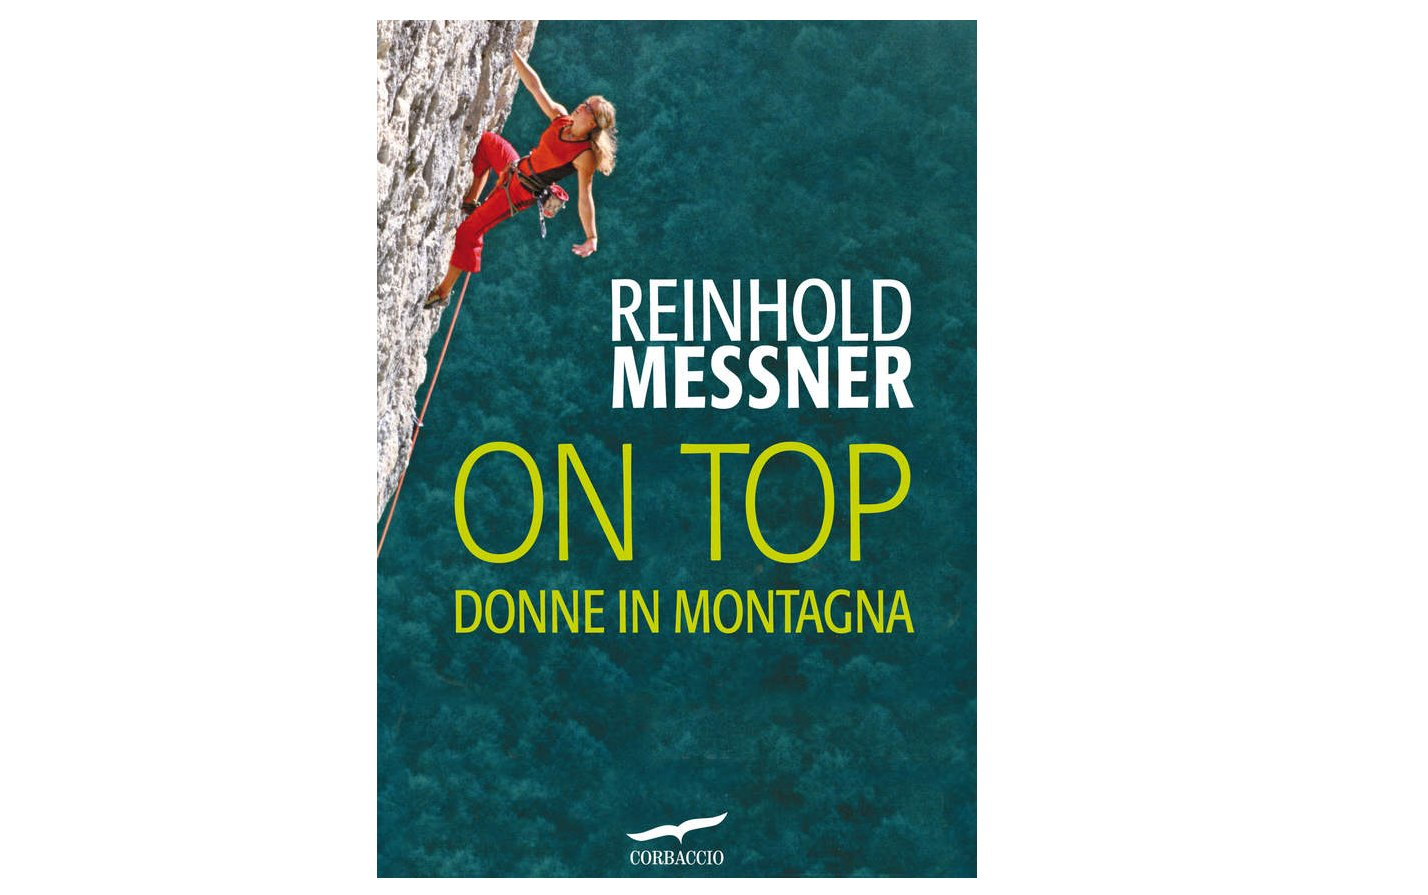 ebook-reinhold-messner-on-top-donne-in-montagna-amazon